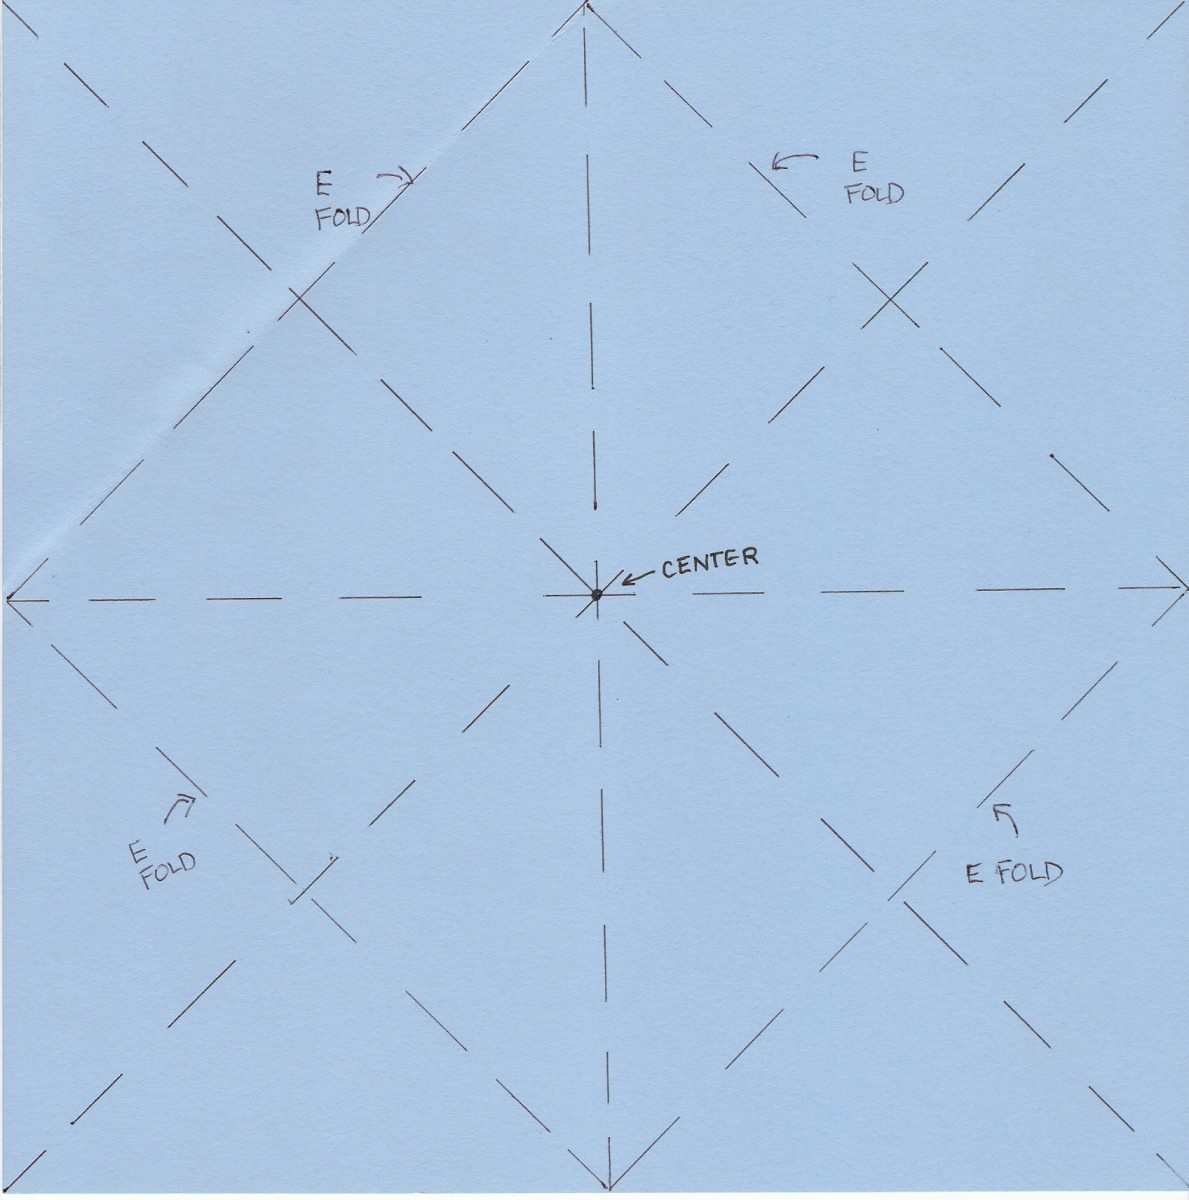 Fold corners to center point, along lines marked E.